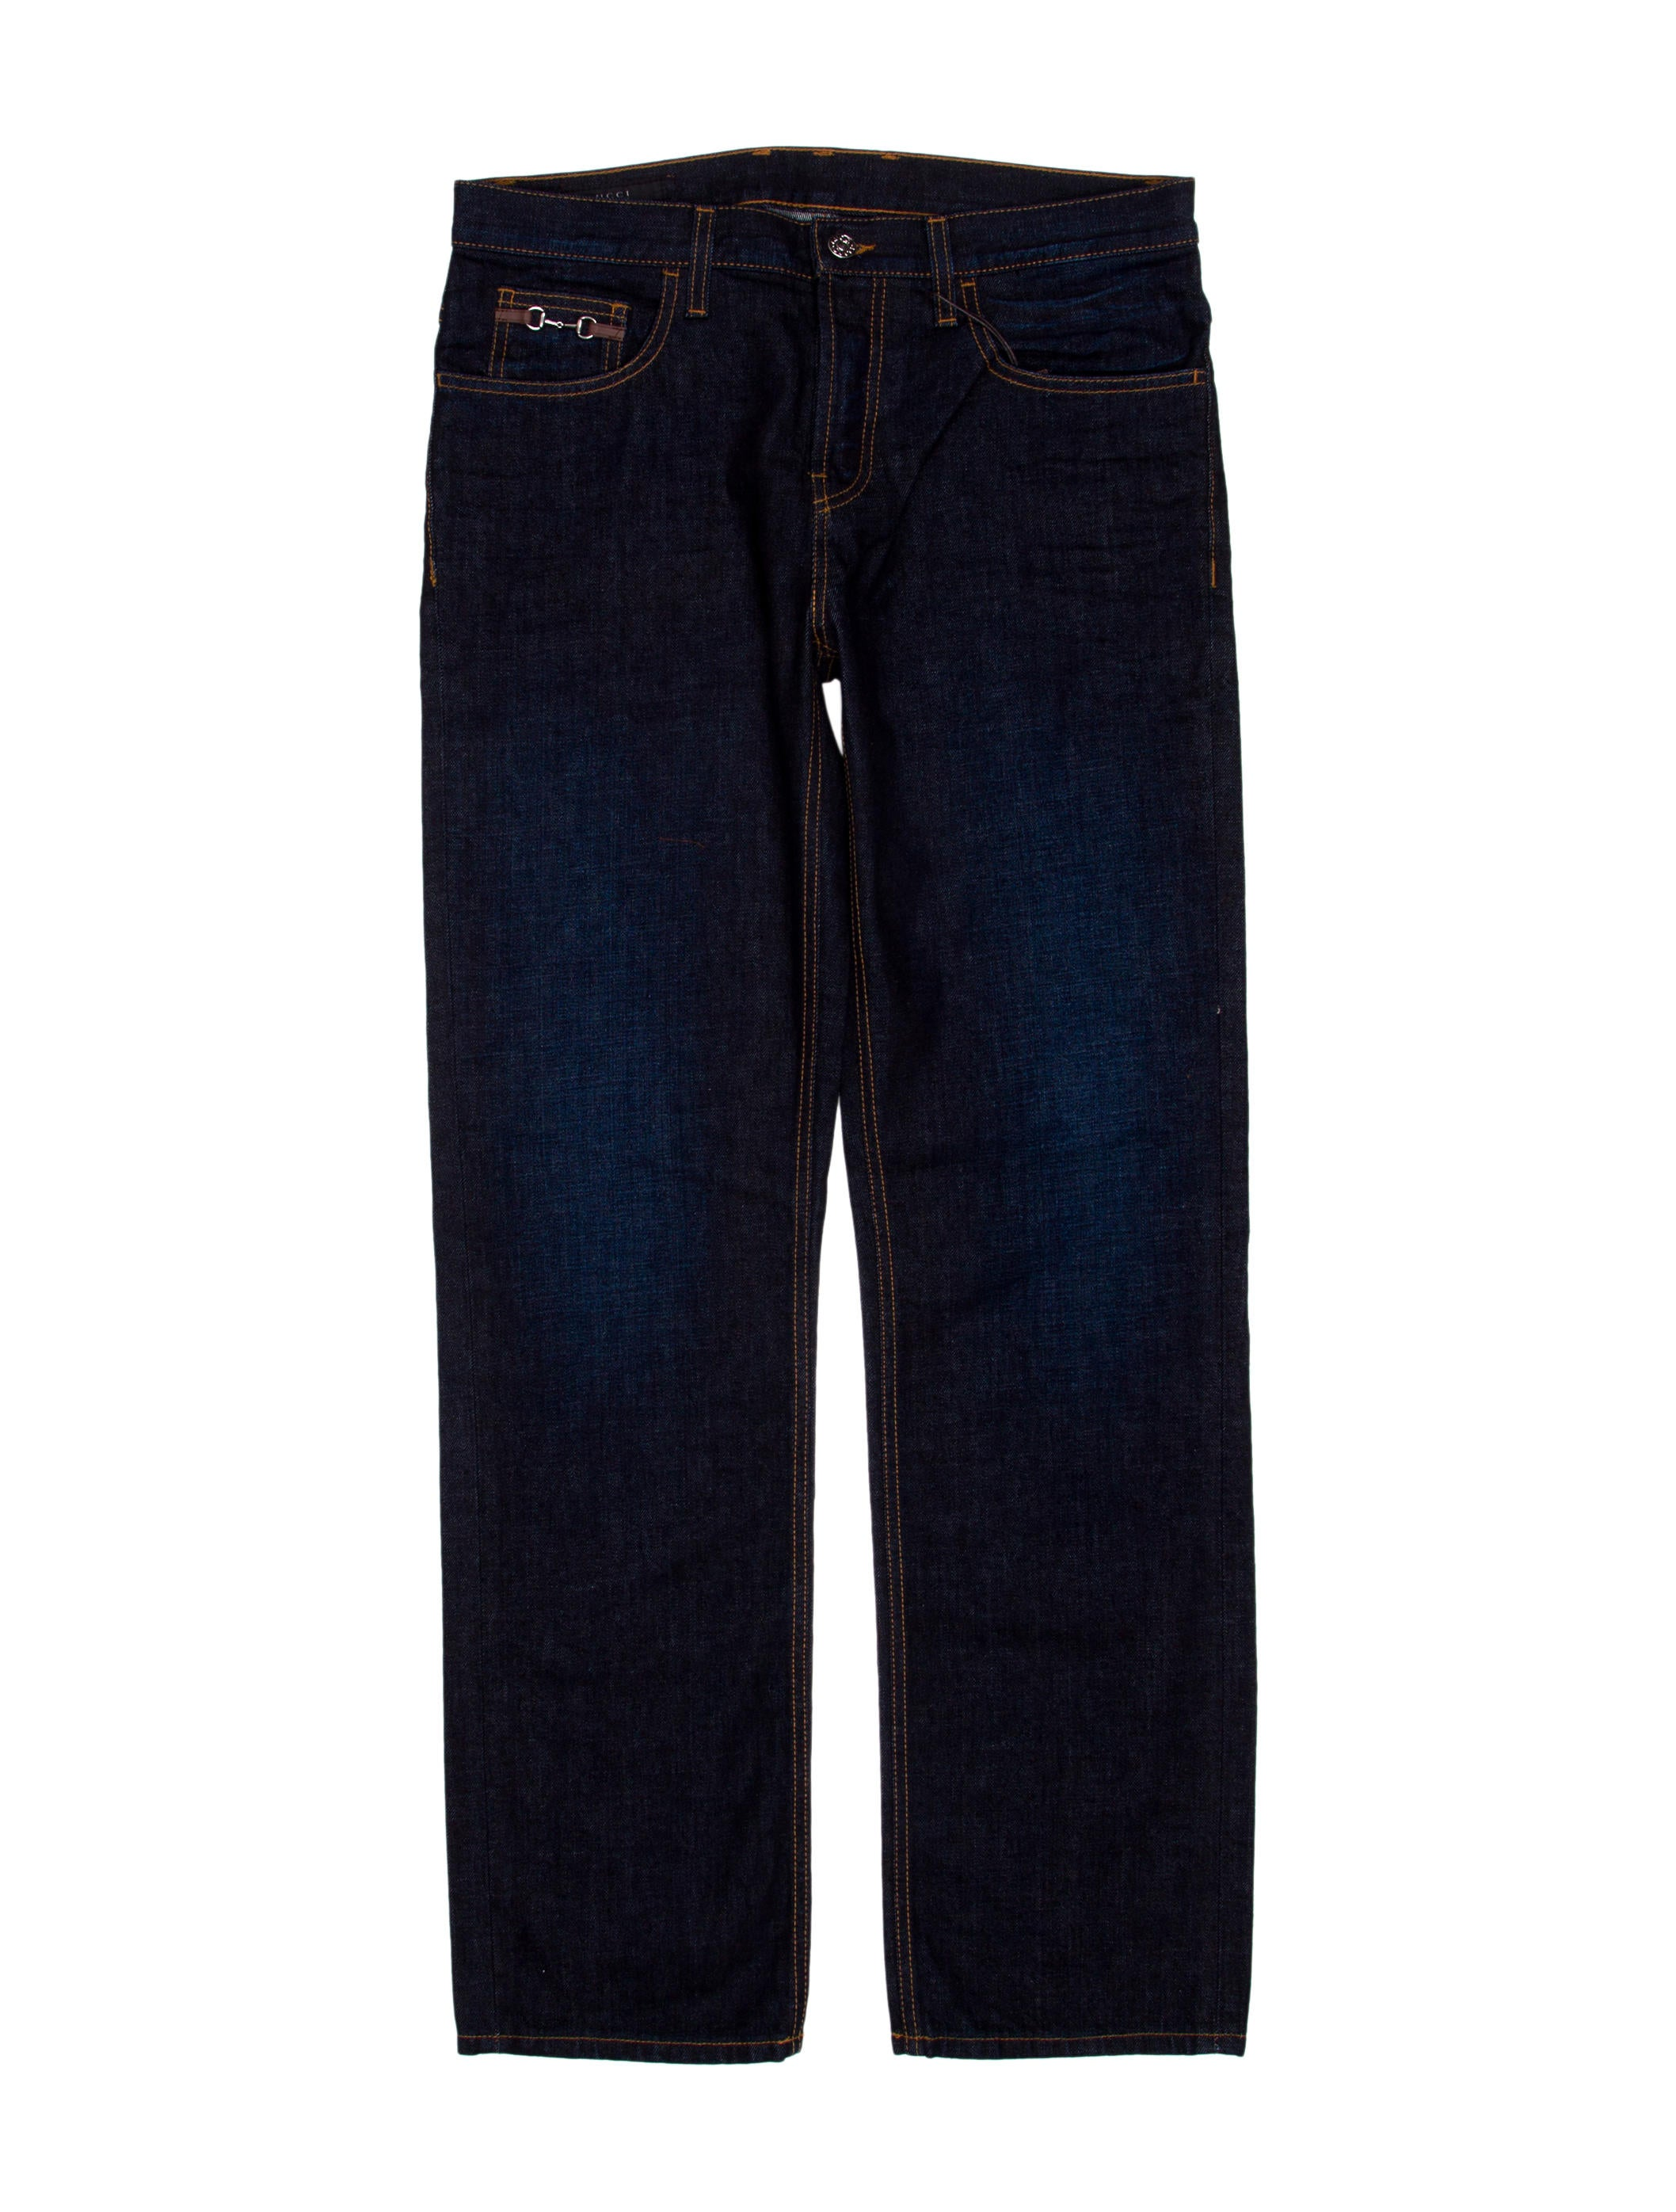 Gucci Jeans W/ Tags - Mens Pants - GUC57111 | The RealReal